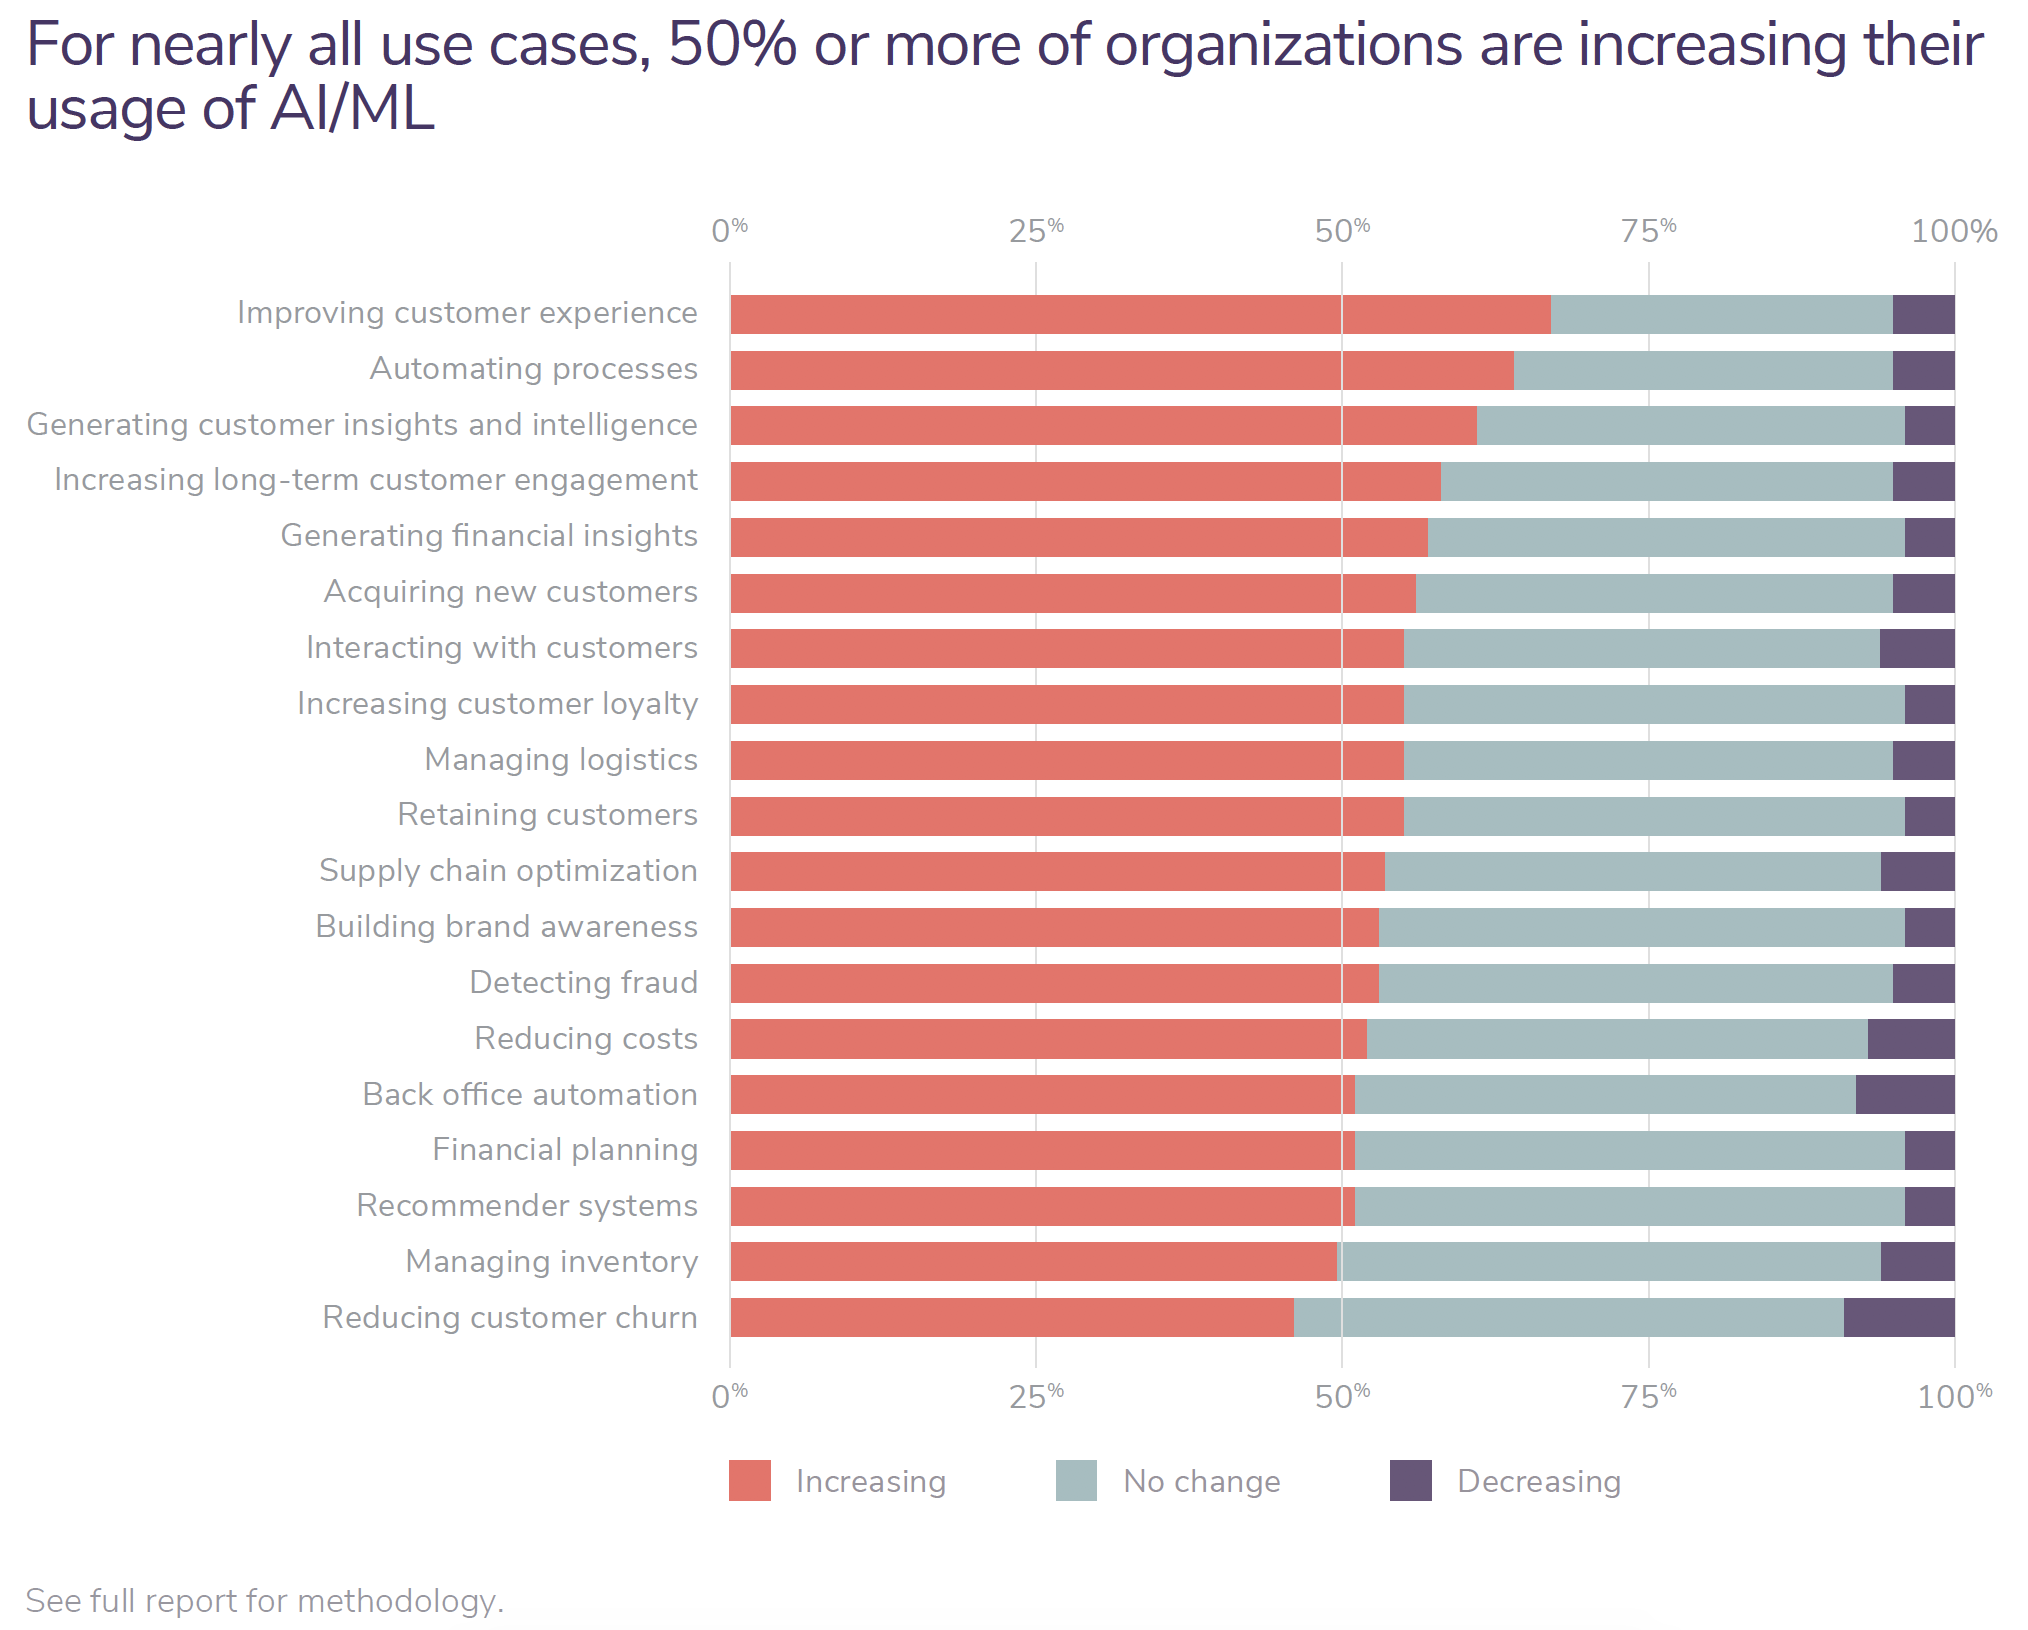 For nearly all use cases, 50% or more of organizations are increasing their usage of AI/ML